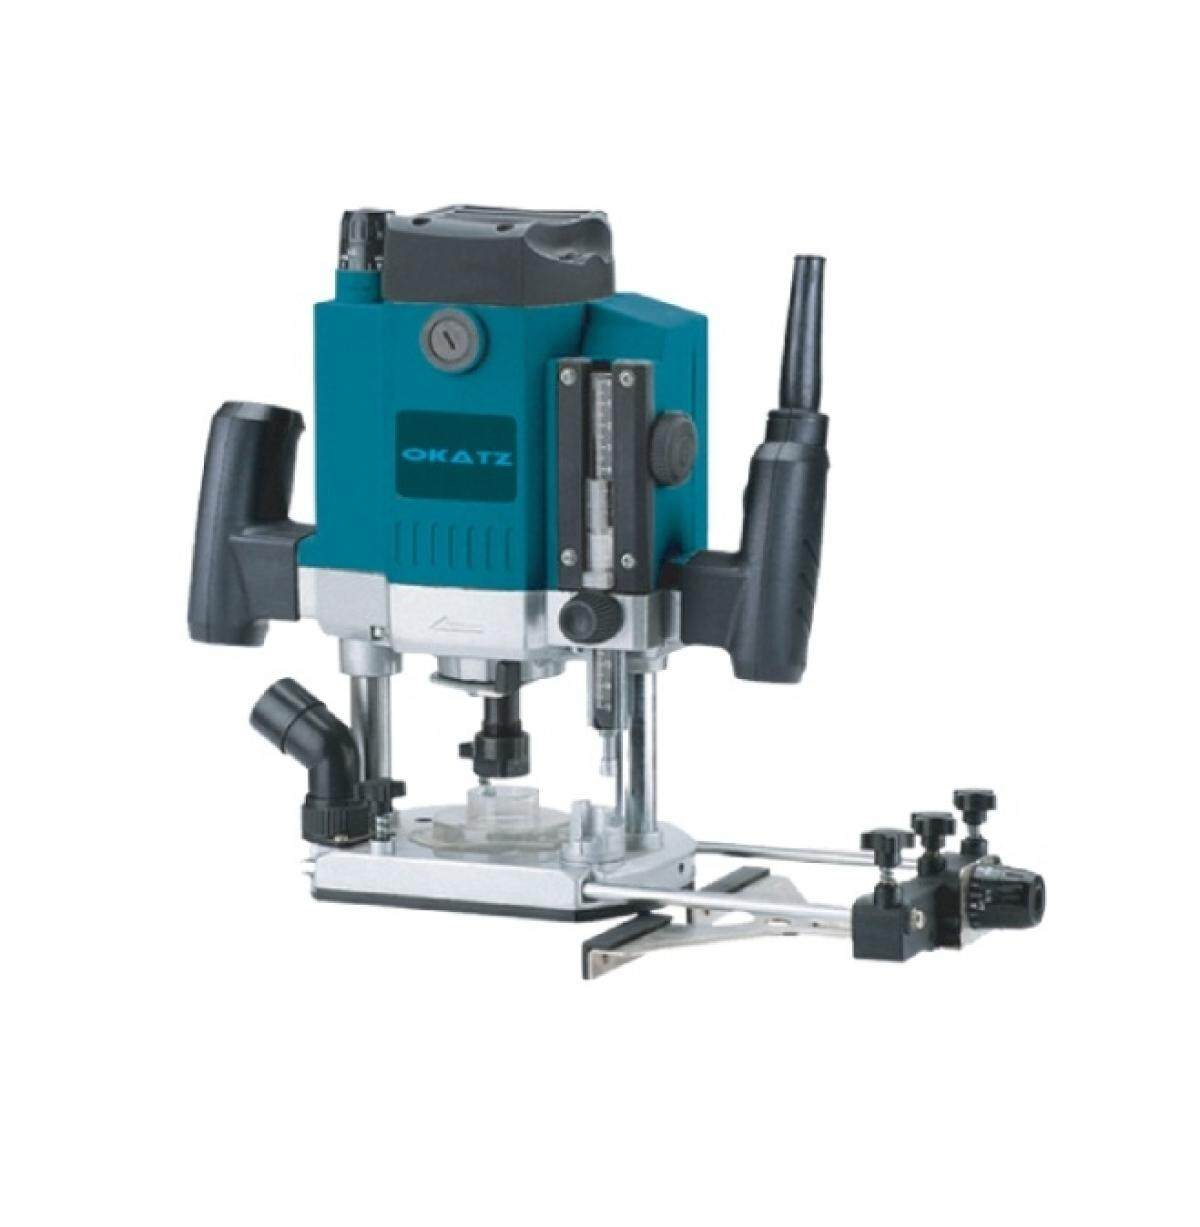 Okatz 1850W 1/2 Wood Plunge Router, Plunge Router